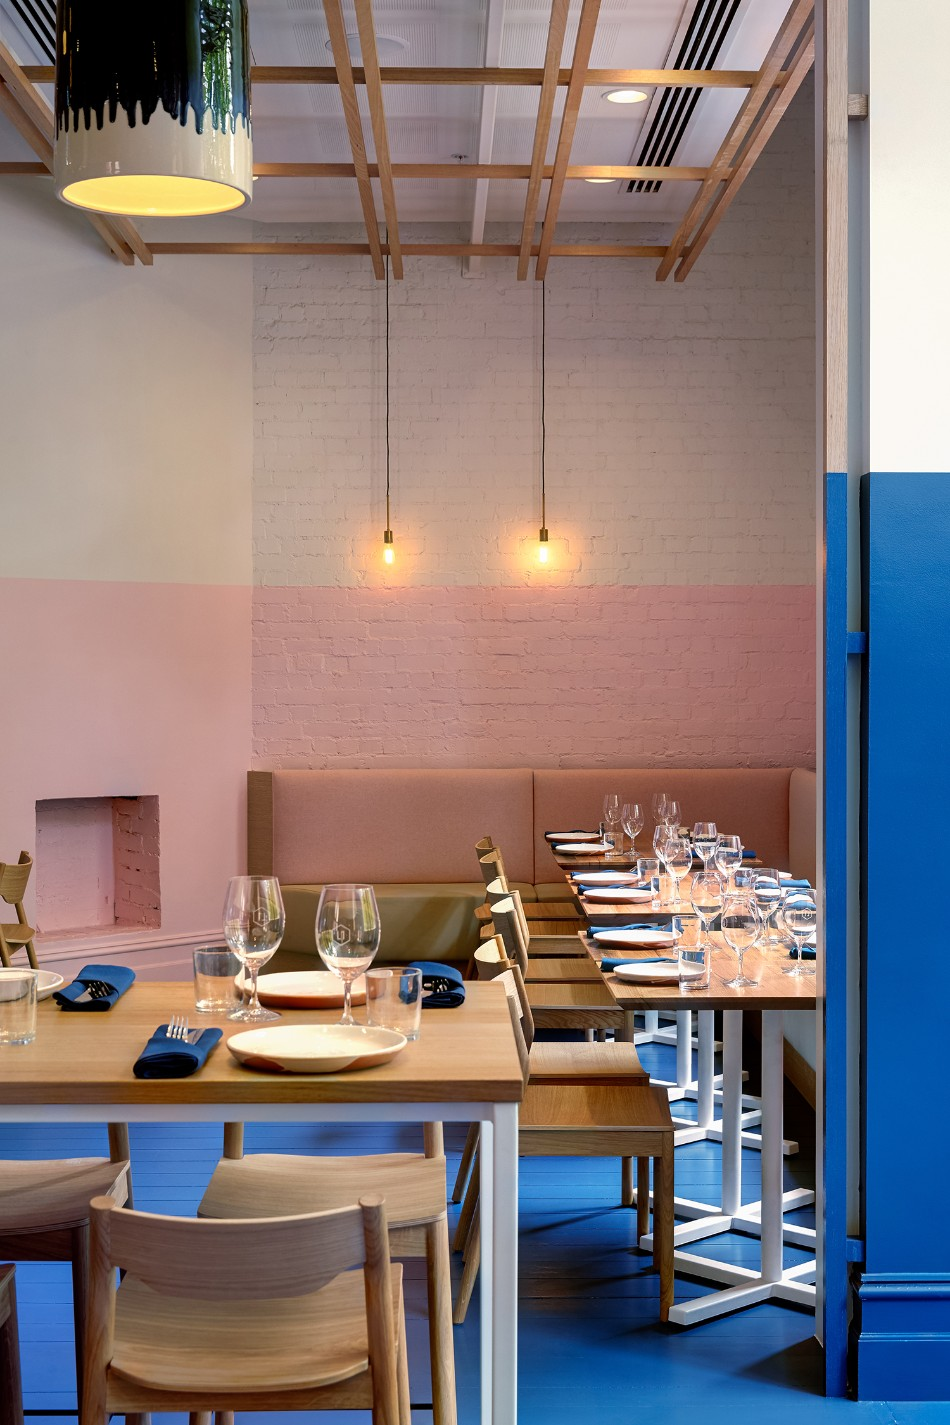 The Innovative Electric Blue Dining Room by Studio Gram | www.bocadolobo.com #moderndiningtables #diningroom #diningarea #thediningroom #restaurants #restaurantdesign @moderndiningtables